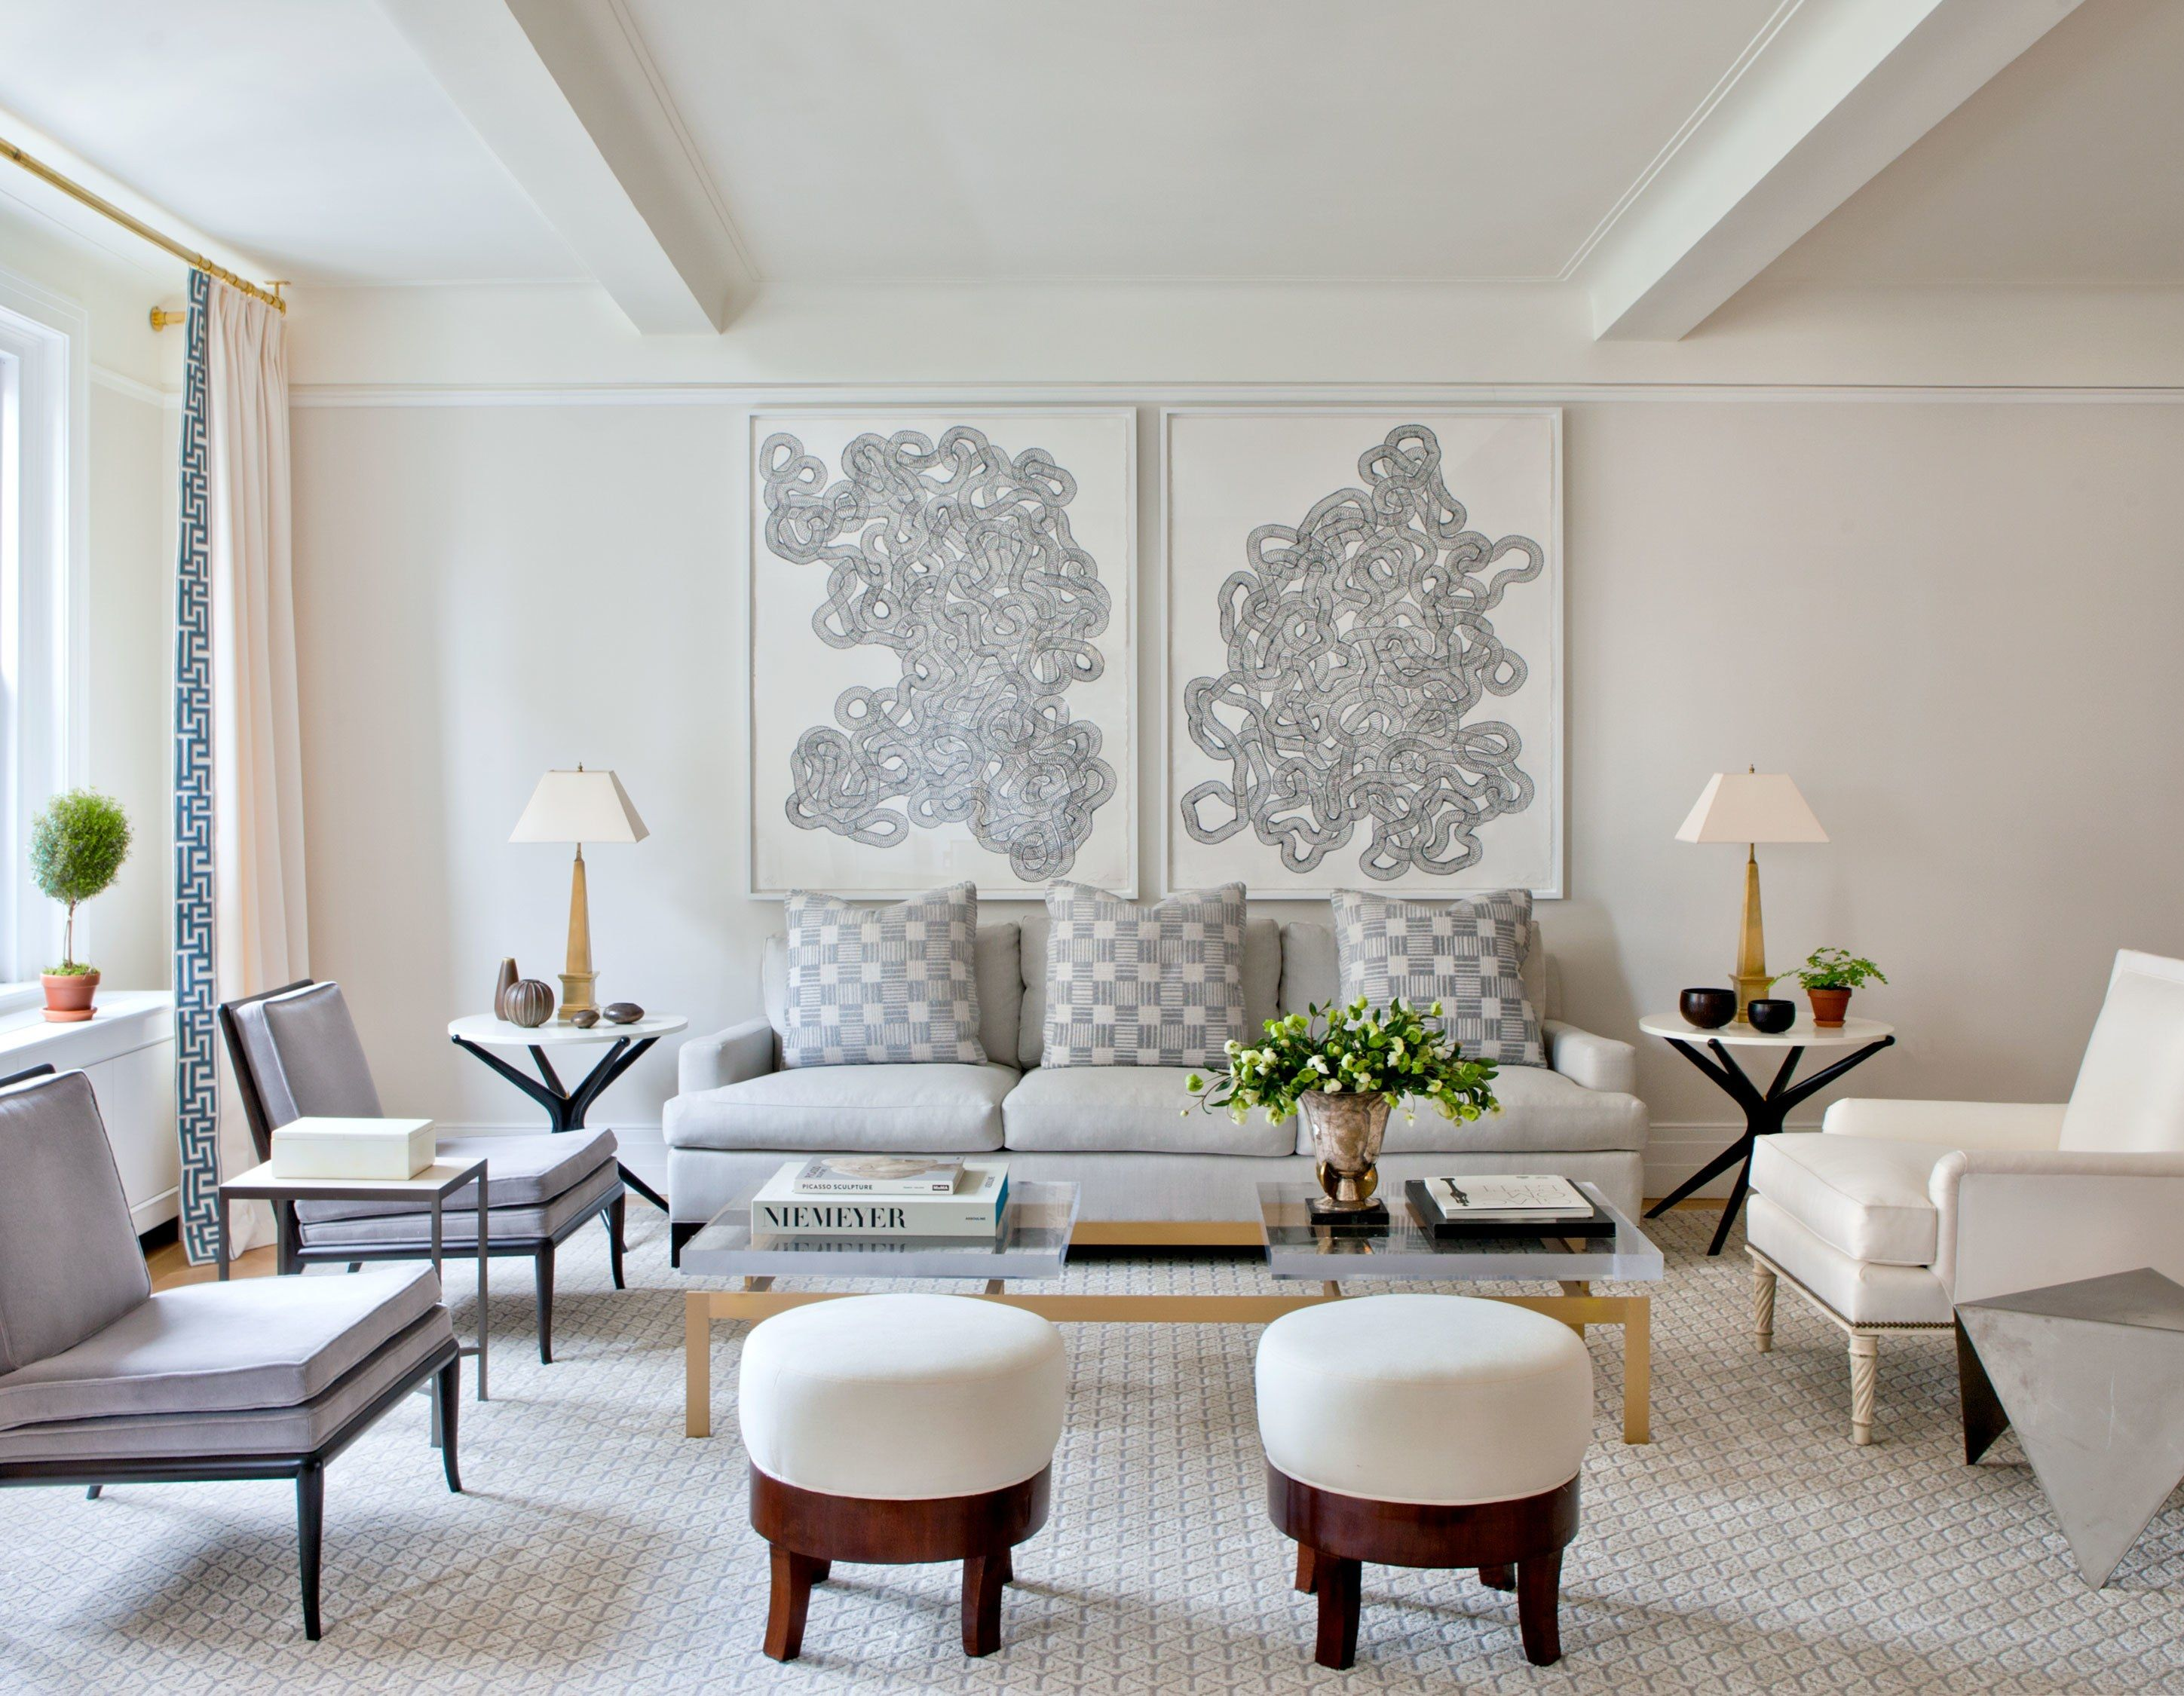 ArchDigest : This New York apartment is both stylish and practical